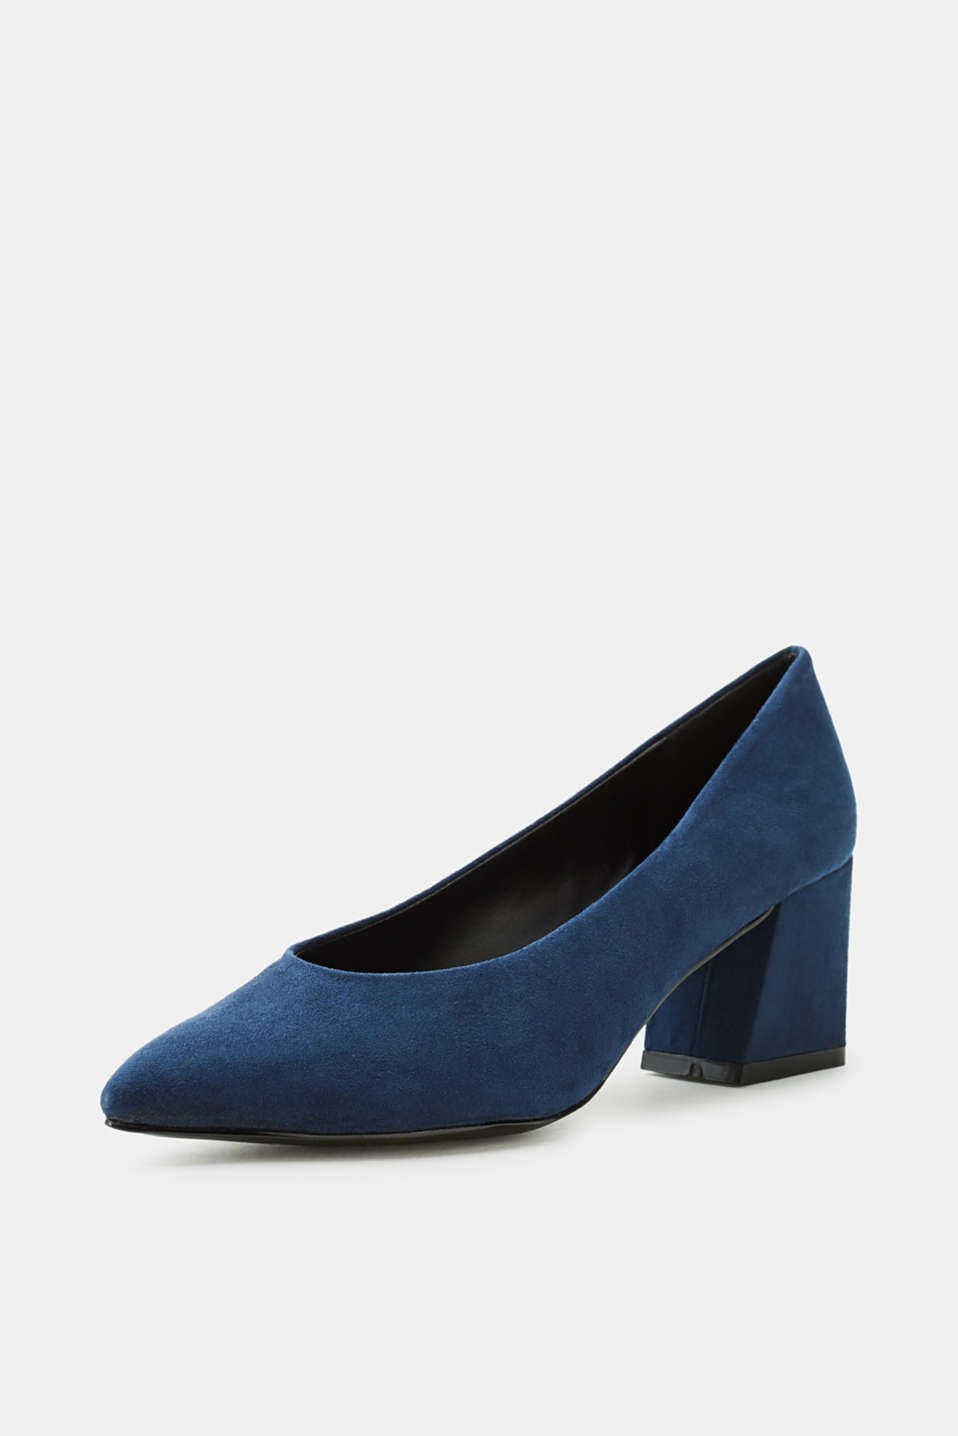 Suede court shoes with a block heel